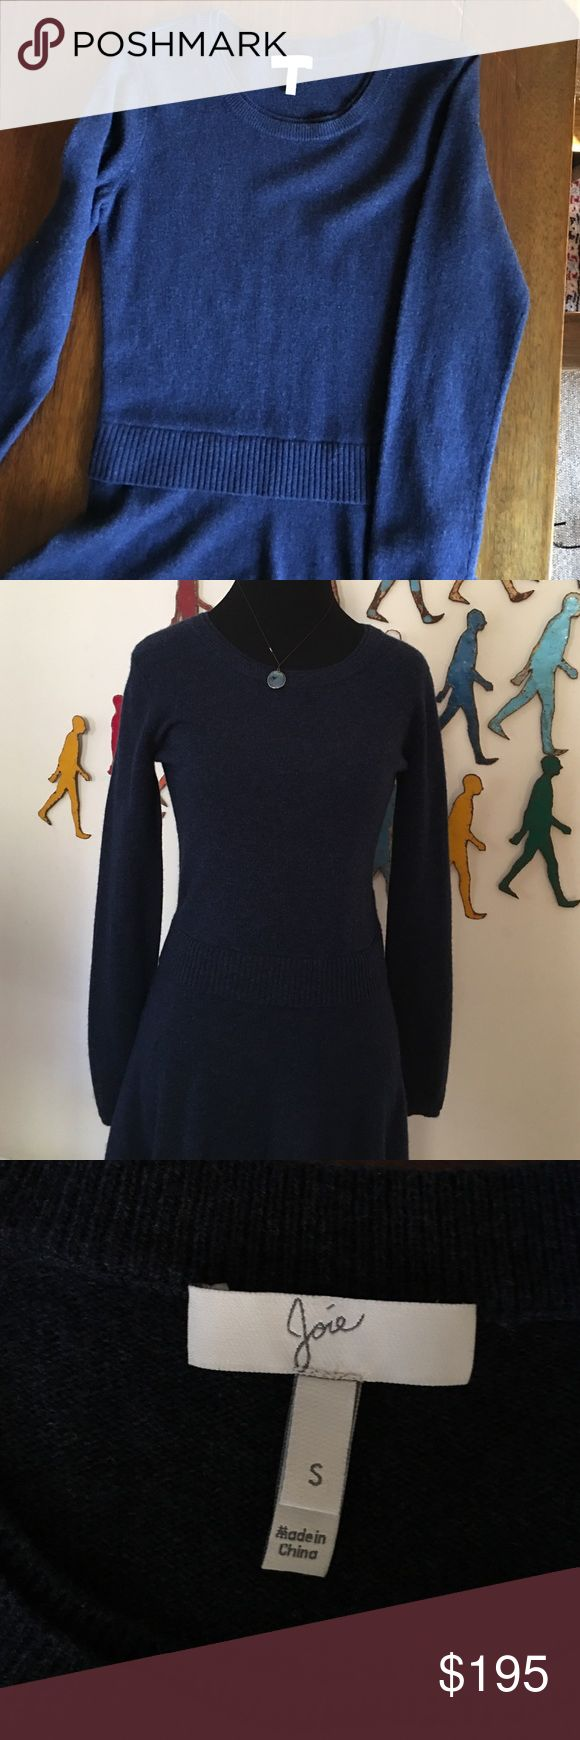 "NWOT S Navy wool/cashmere Joie dress Softest flattering dress in amazing navy color. Never worn.  Waist detail with flare bottom. Shoulder to hem 37"". Joie Dresses"